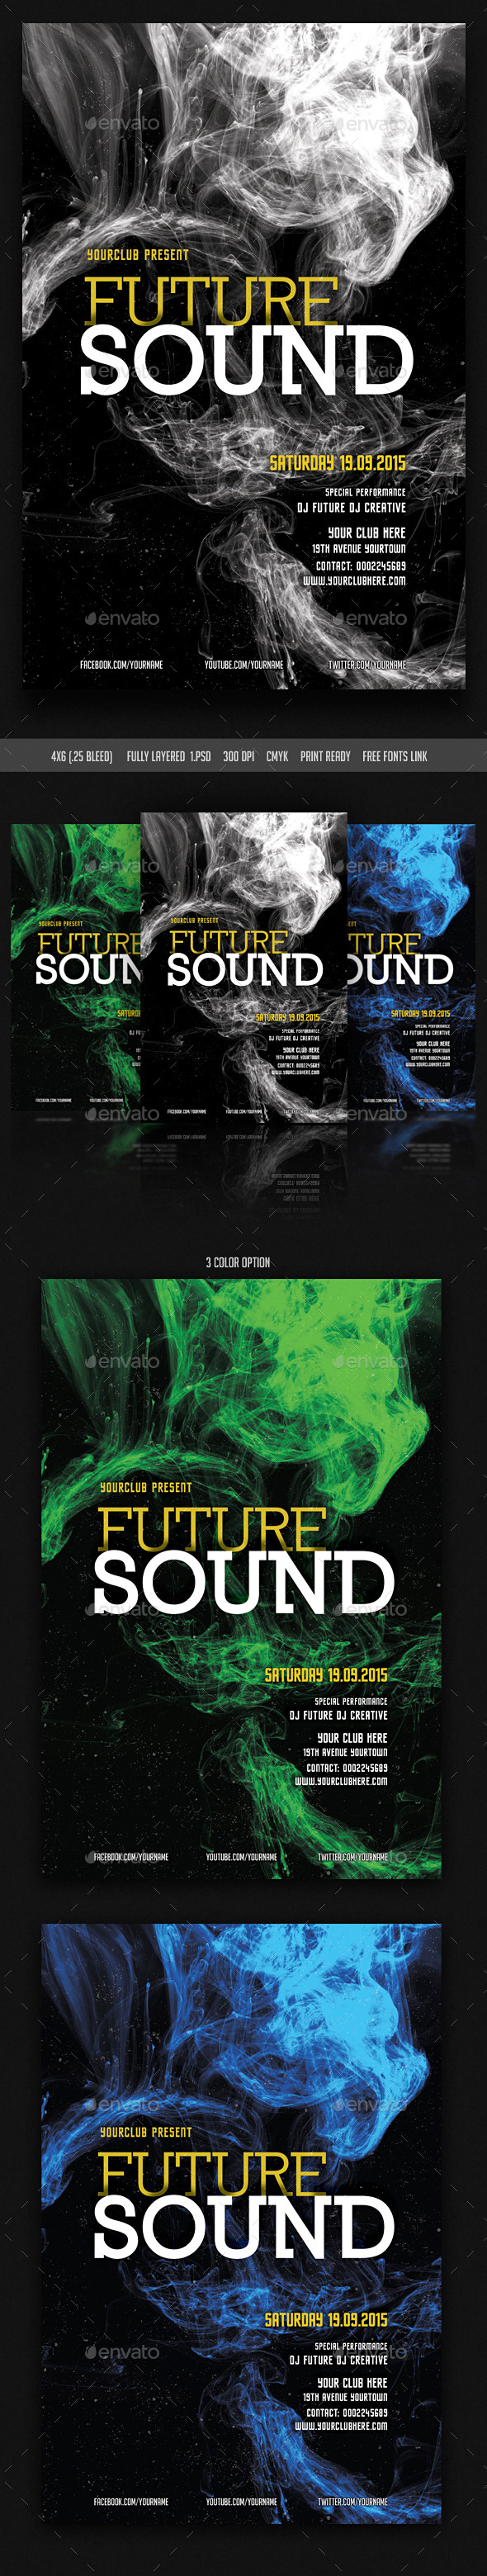 GraphicRiver Future Sound Flyer 10695854